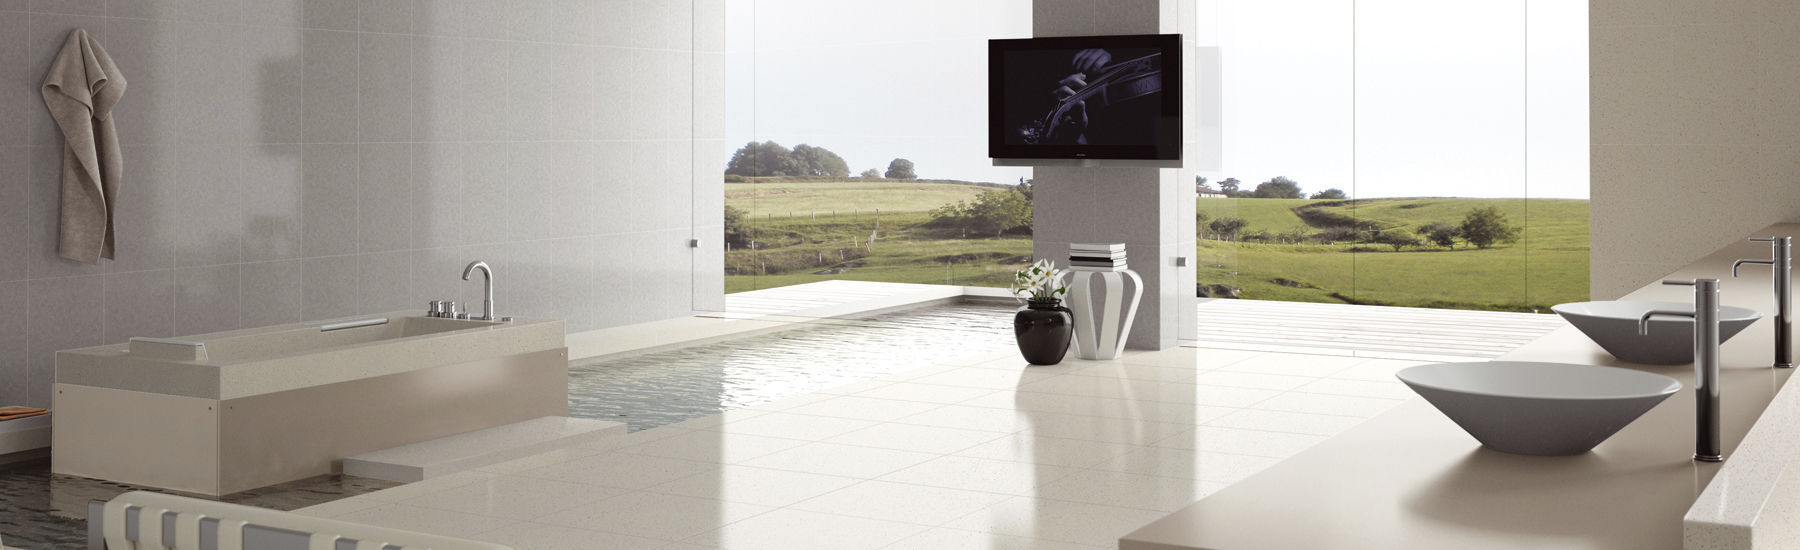 Bathroom tile / floor / marble / plain - BLANCO MICRO - COMPAC The ...